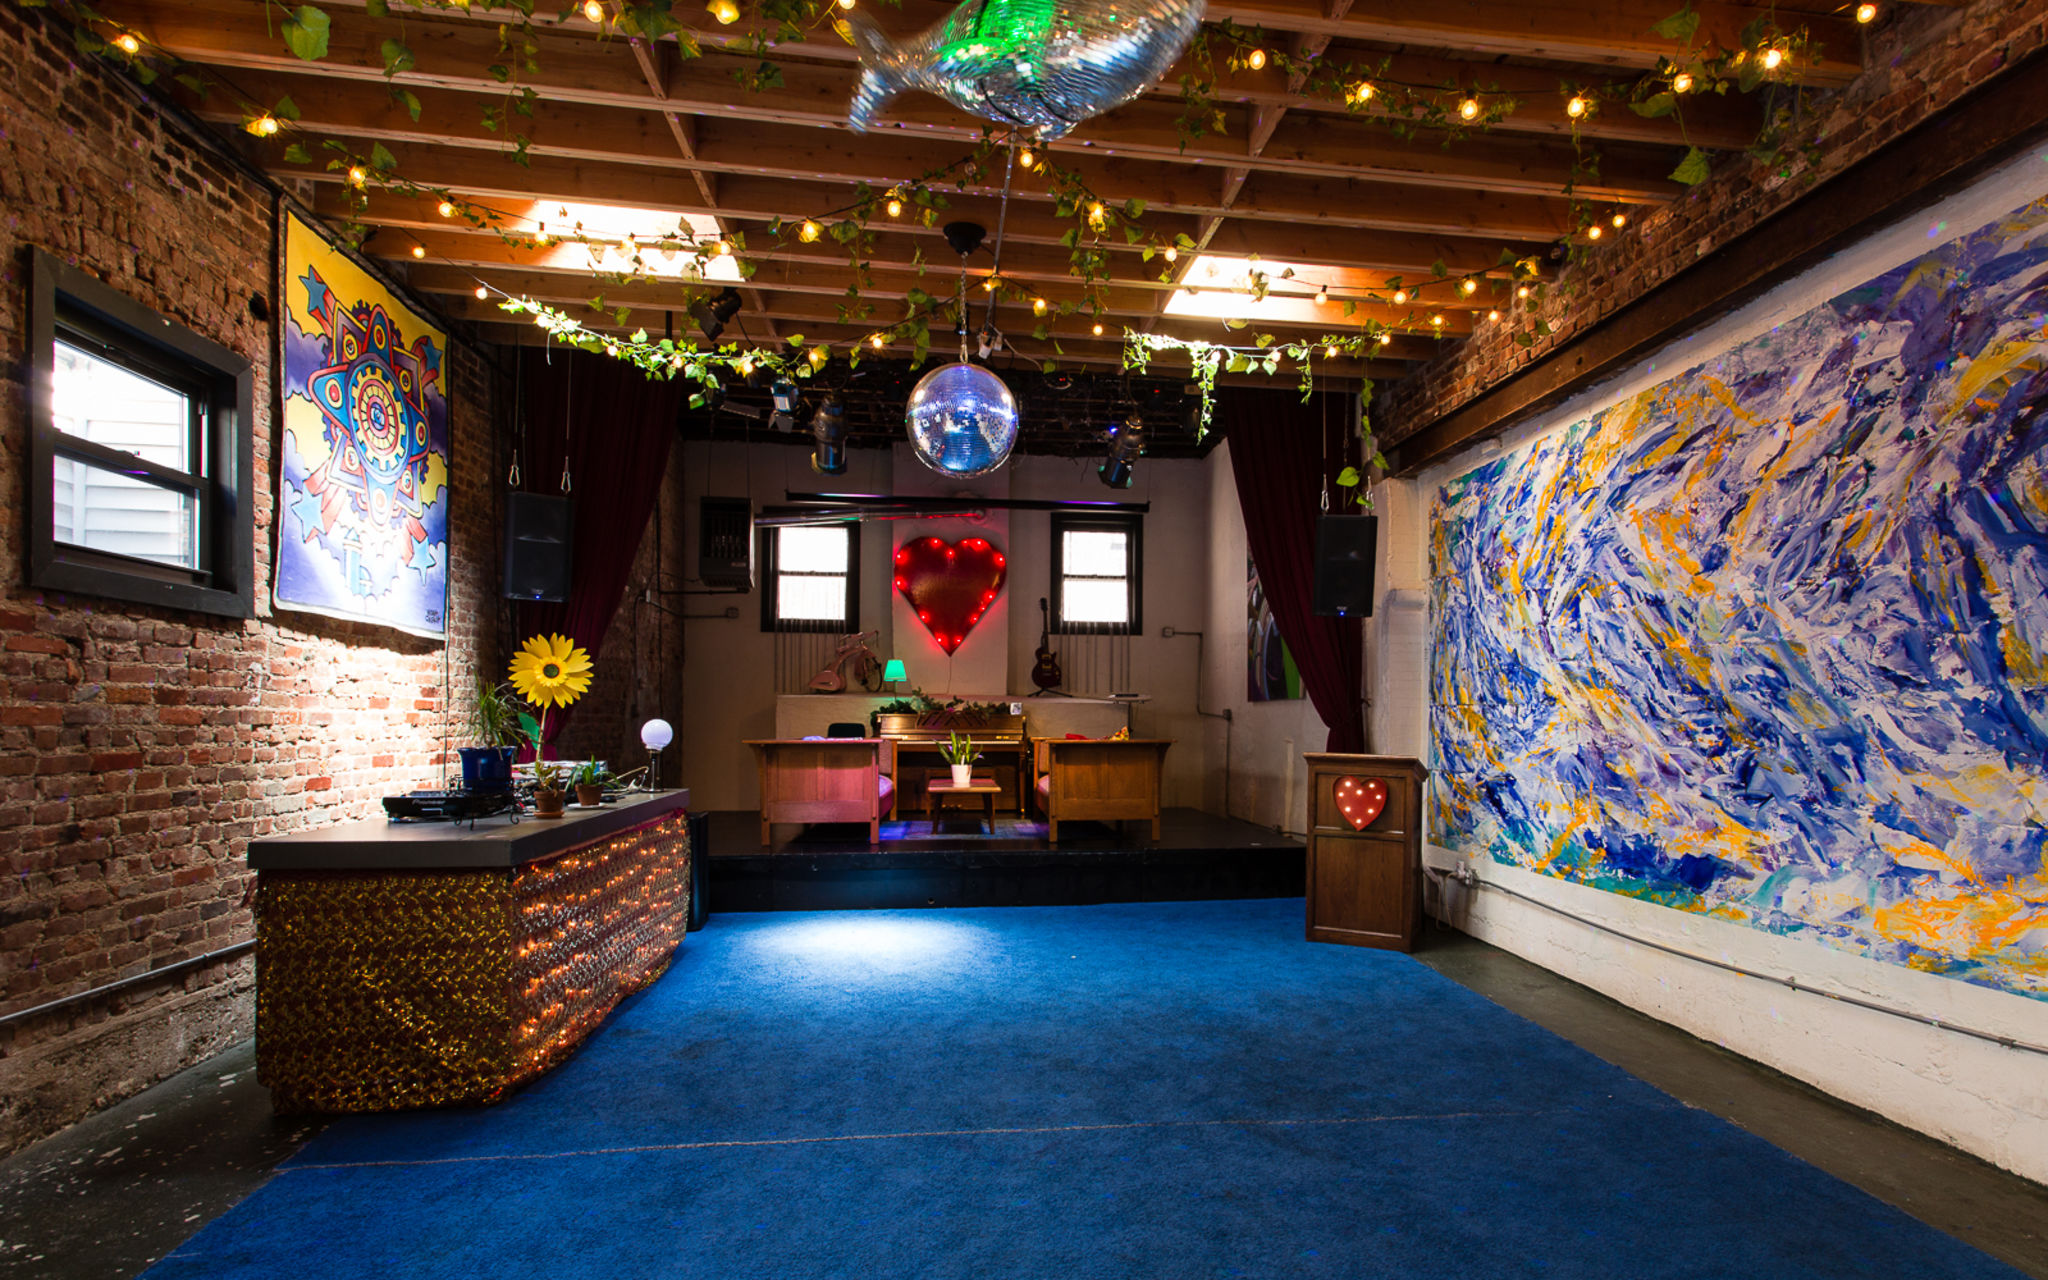 Decor Film Magical Music Venue Vintage Decor Rich Aesthetics And Props Perfect For Film And Photo Shoots